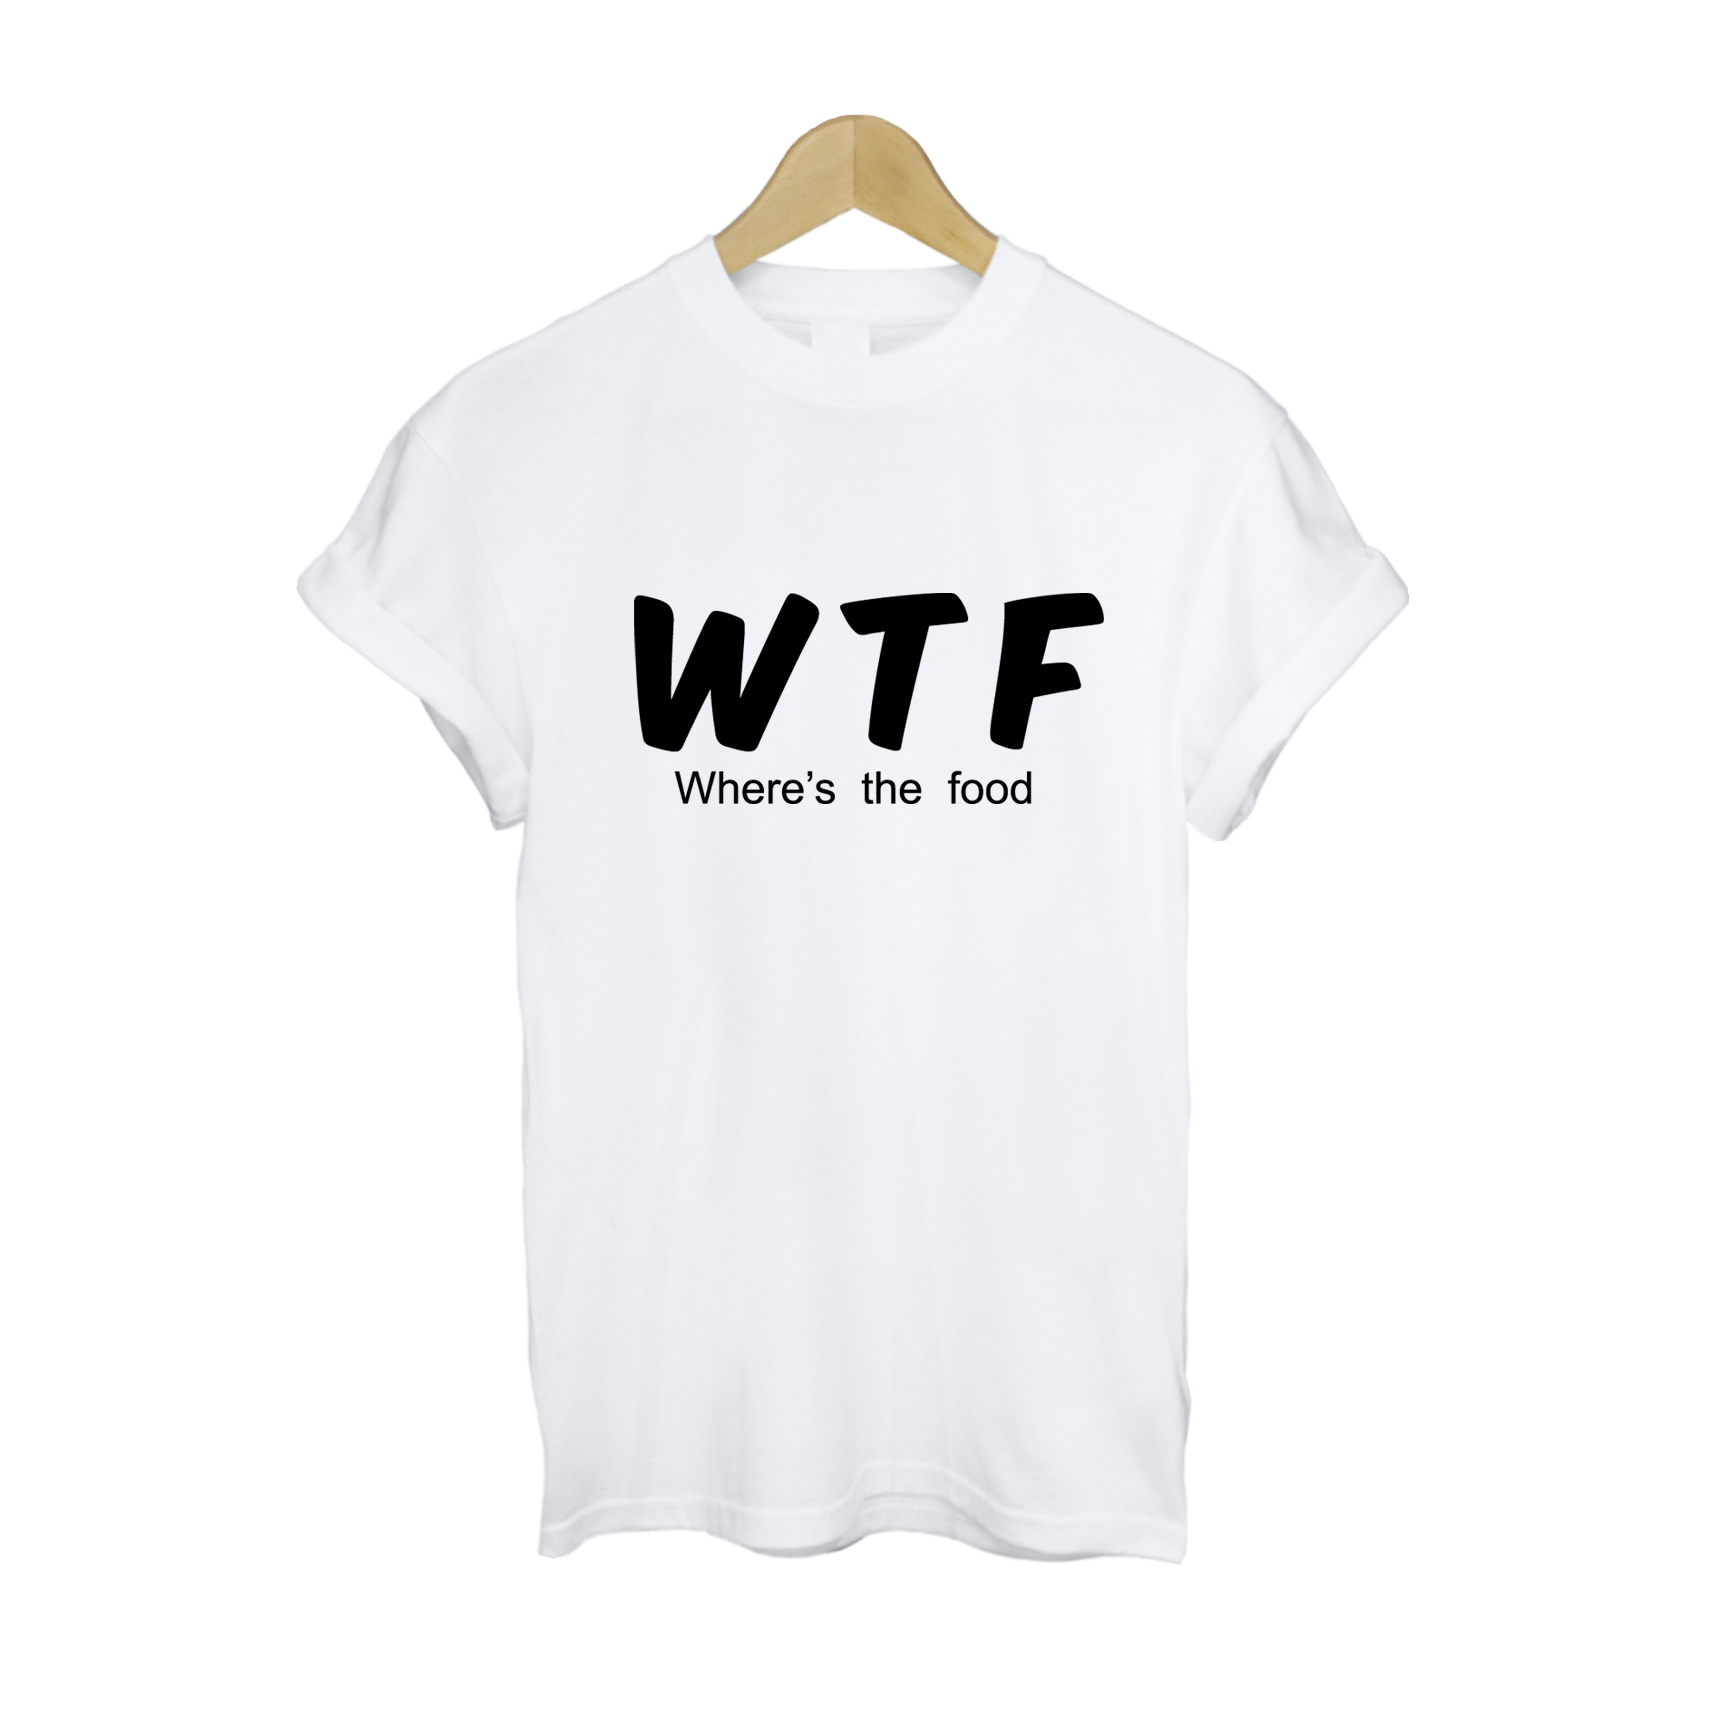 WTF (Where's The Food) T Shirt £10   Free UK Delivery   10% OFF